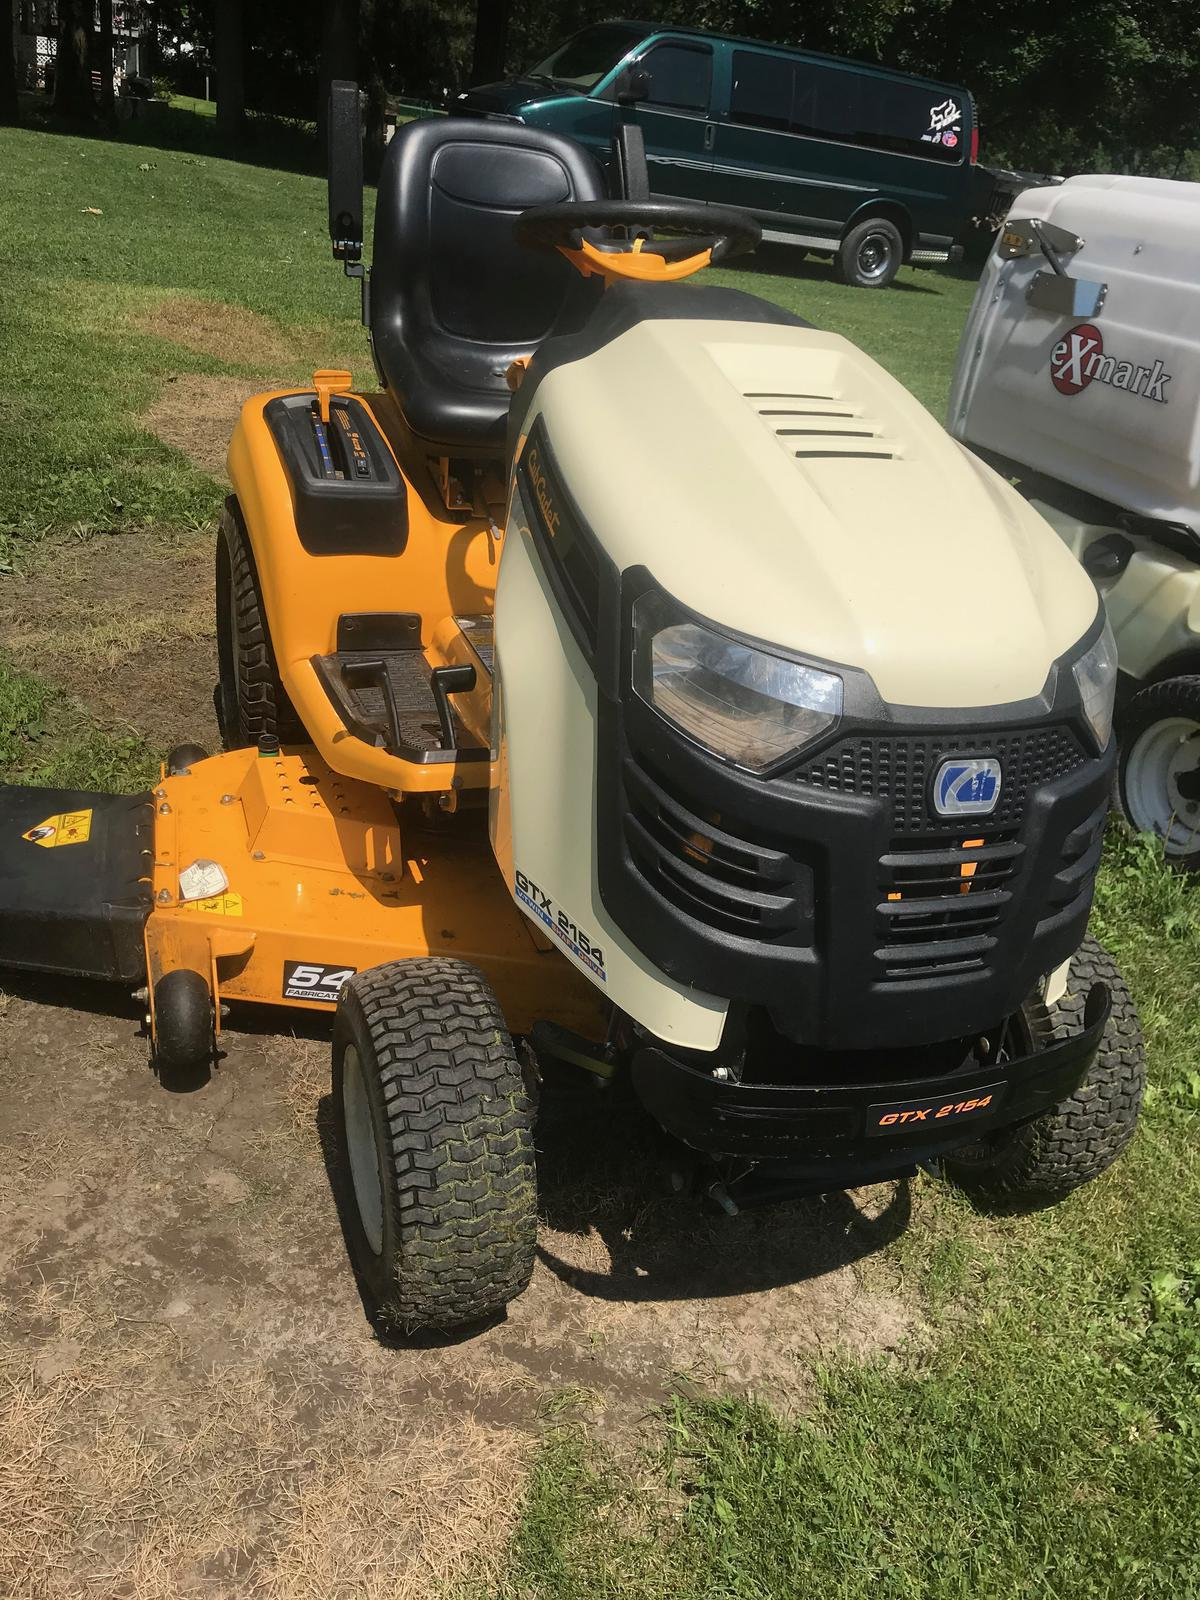 Inventory from Cub Cadet Worcester's North Ridgeville, OH 440-327-2196